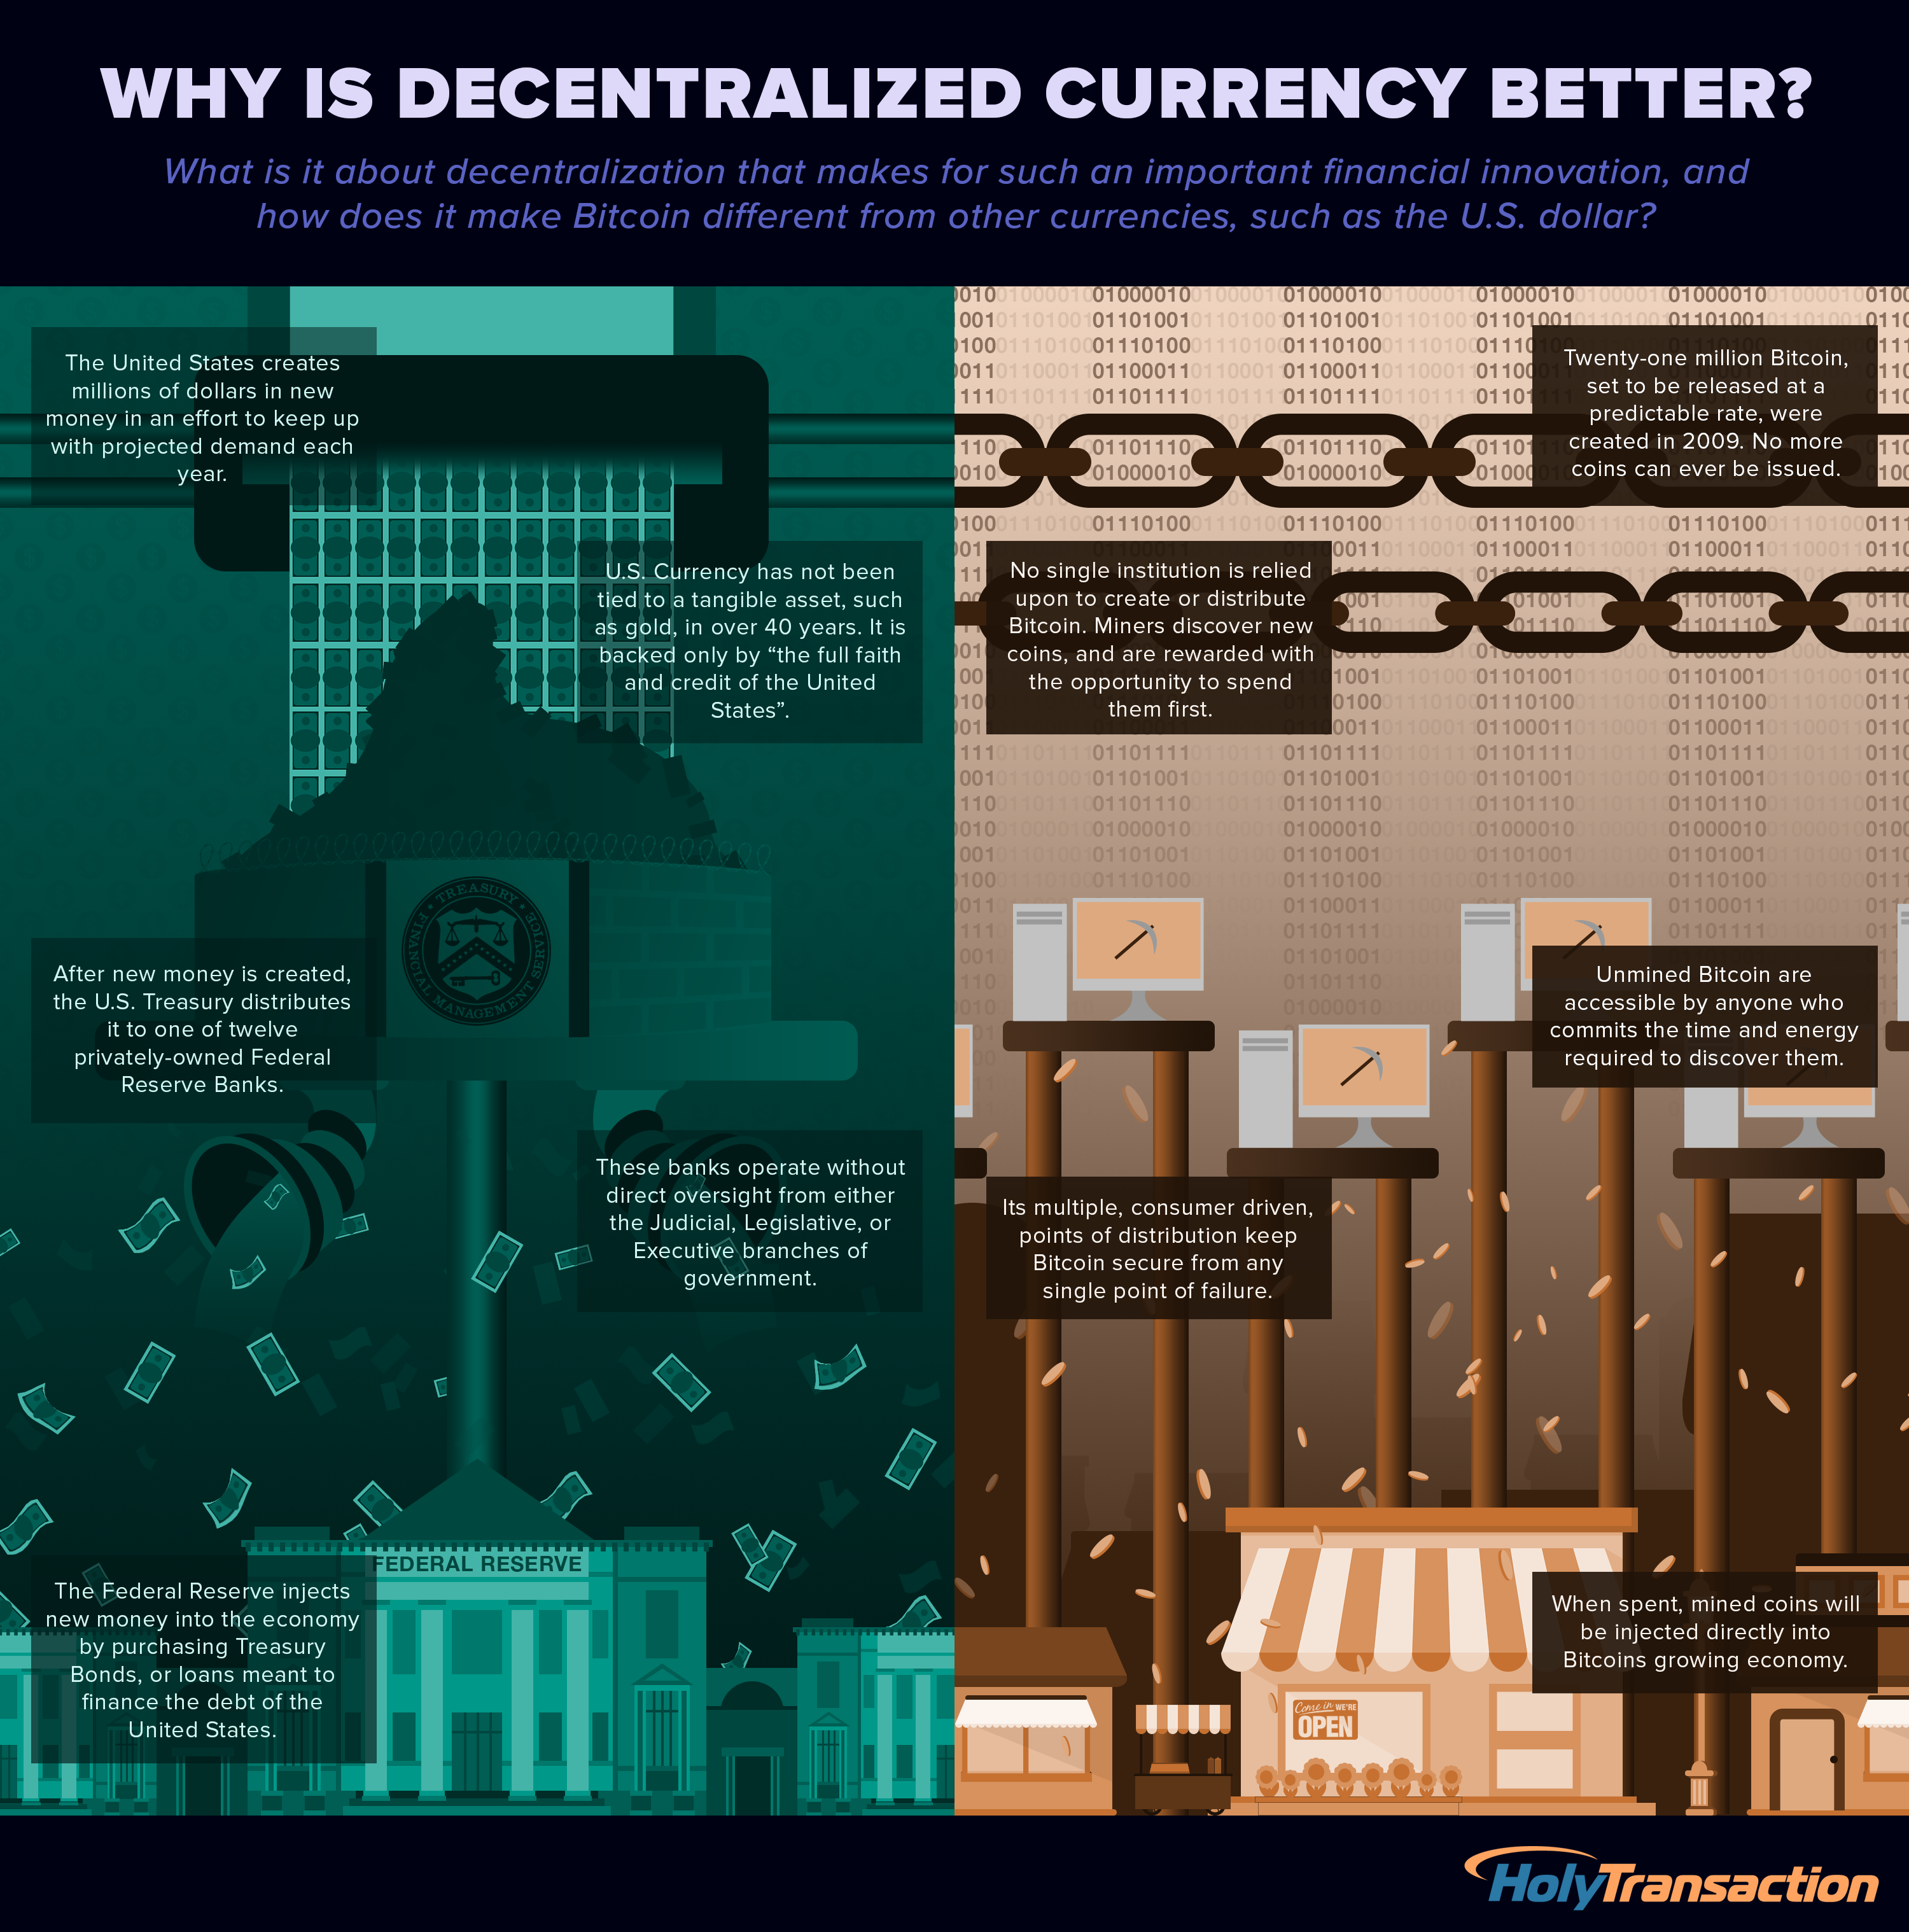 Why is decentralized currency better? | HolyTransaction